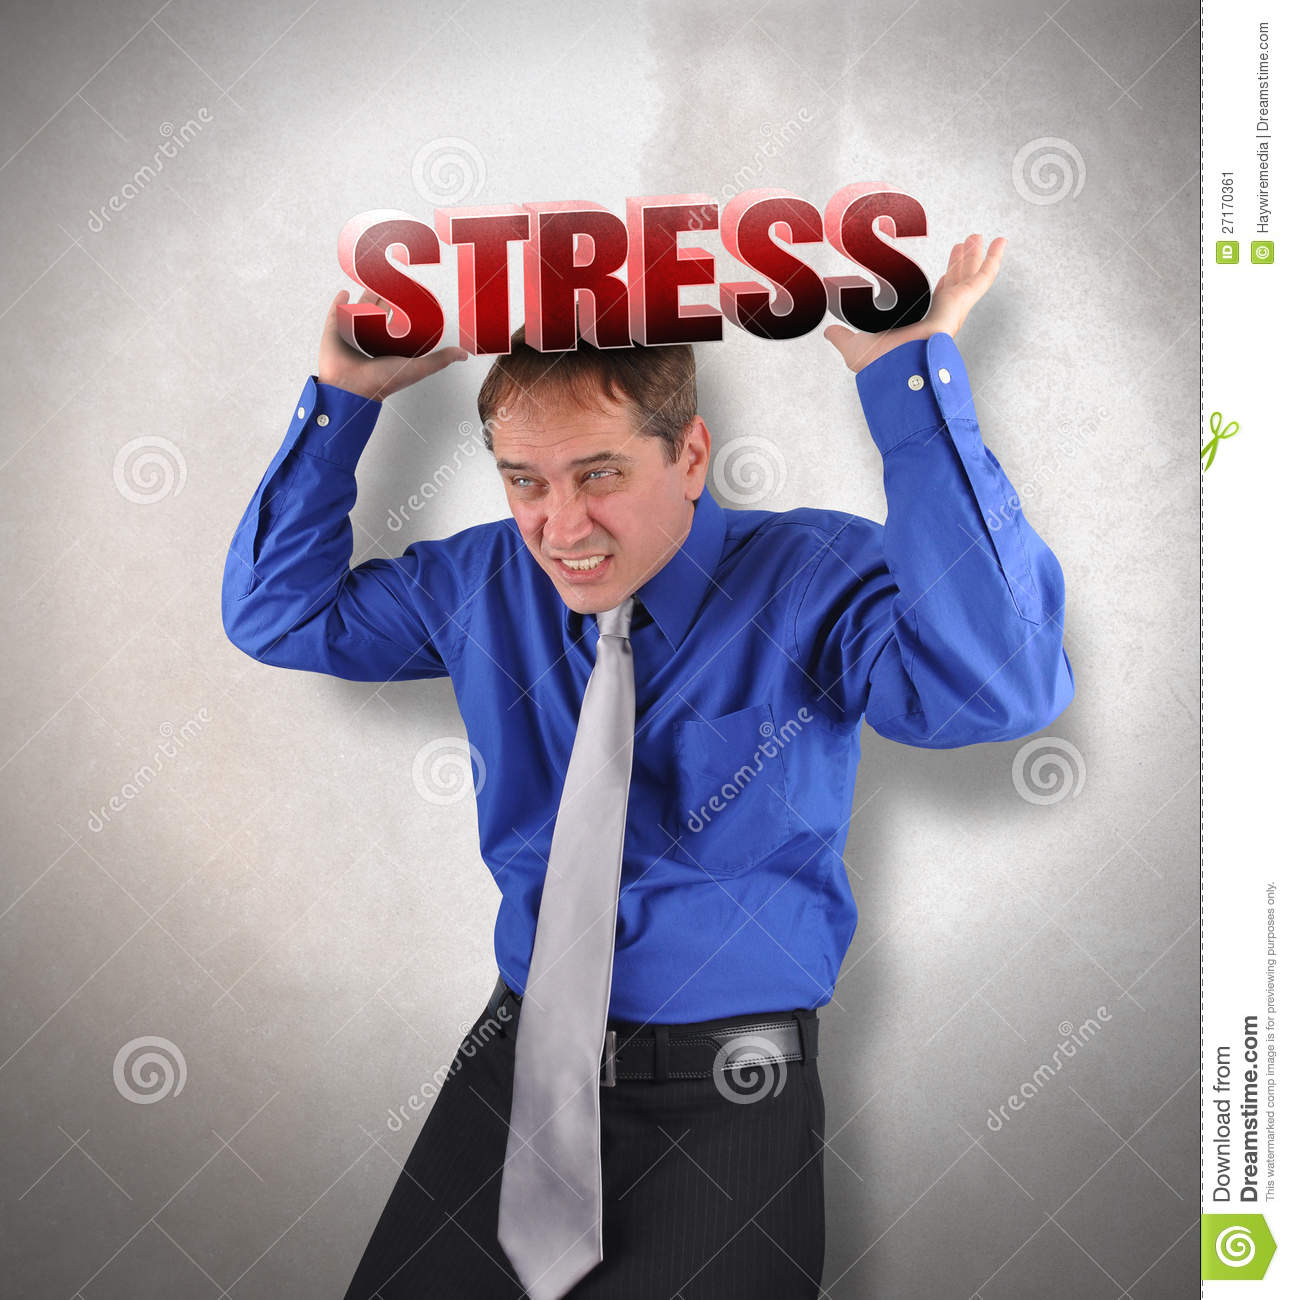 Stress Man Under Pressure Stock Image Image 27170361